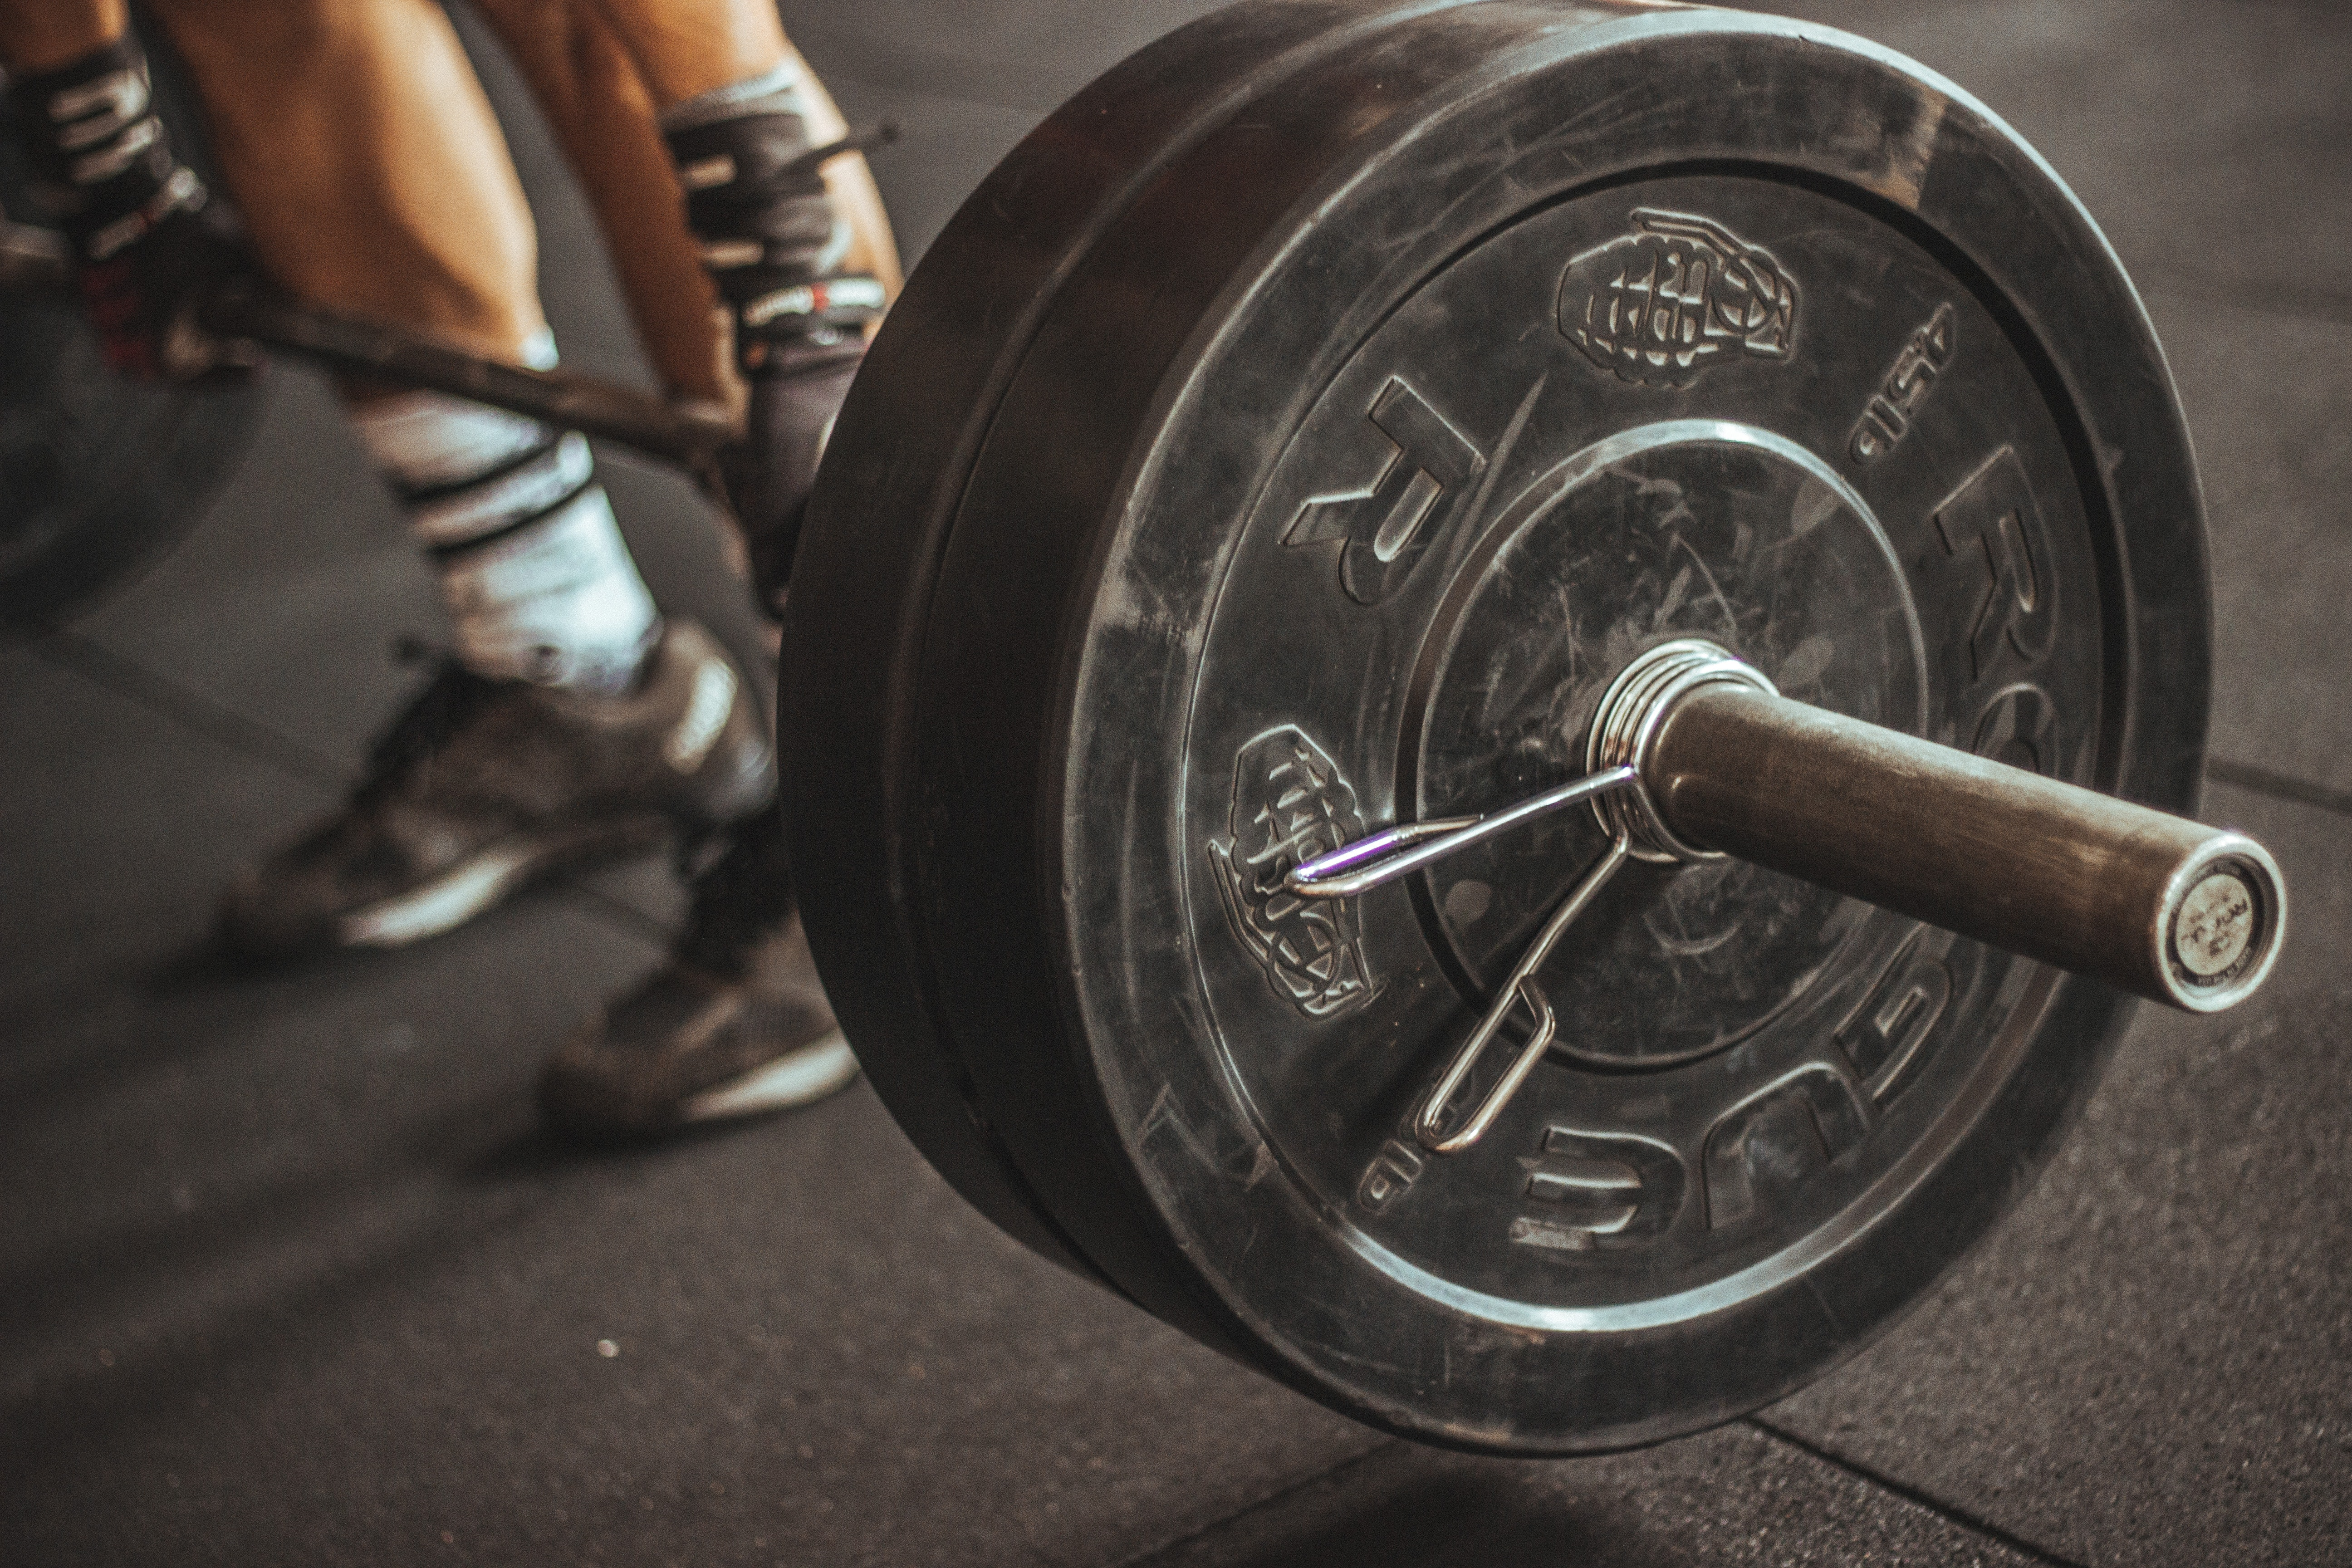 Person Lifting Barbell, Athlete, Indoors, Weights, Weightlifting, HQ Photo